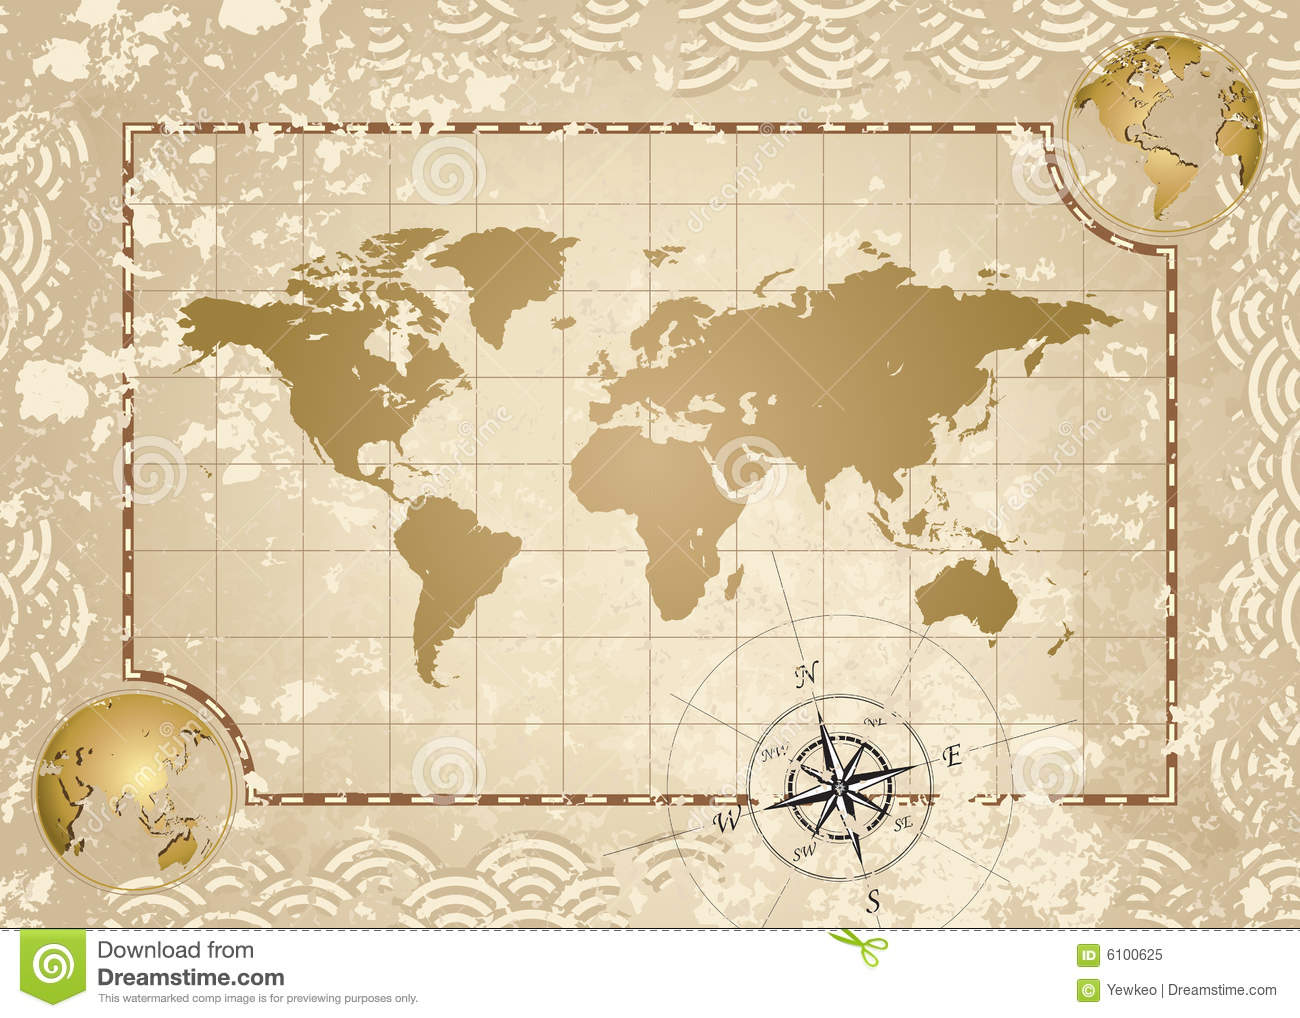 Antique world map stock vector illustration of global 6100625 antique world map gumiabroncs Gallery